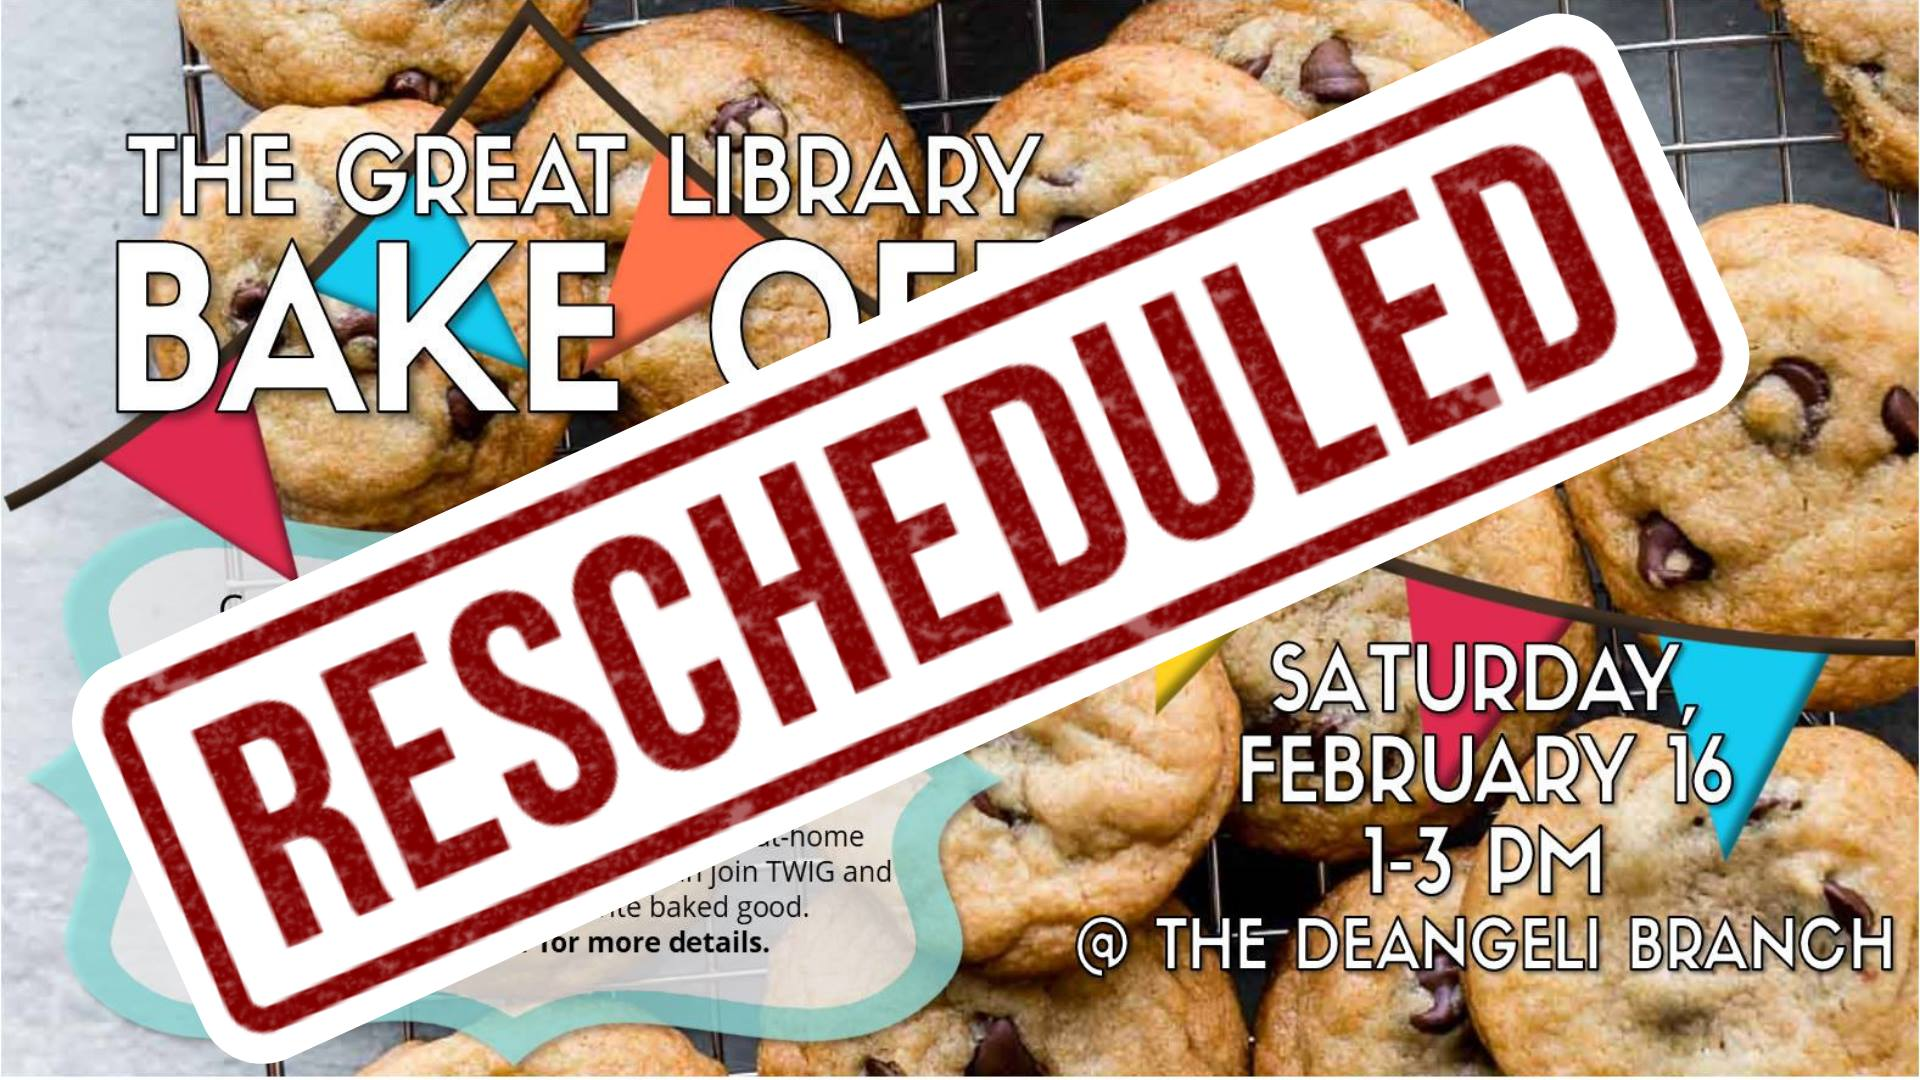 The Great Library Bake Off